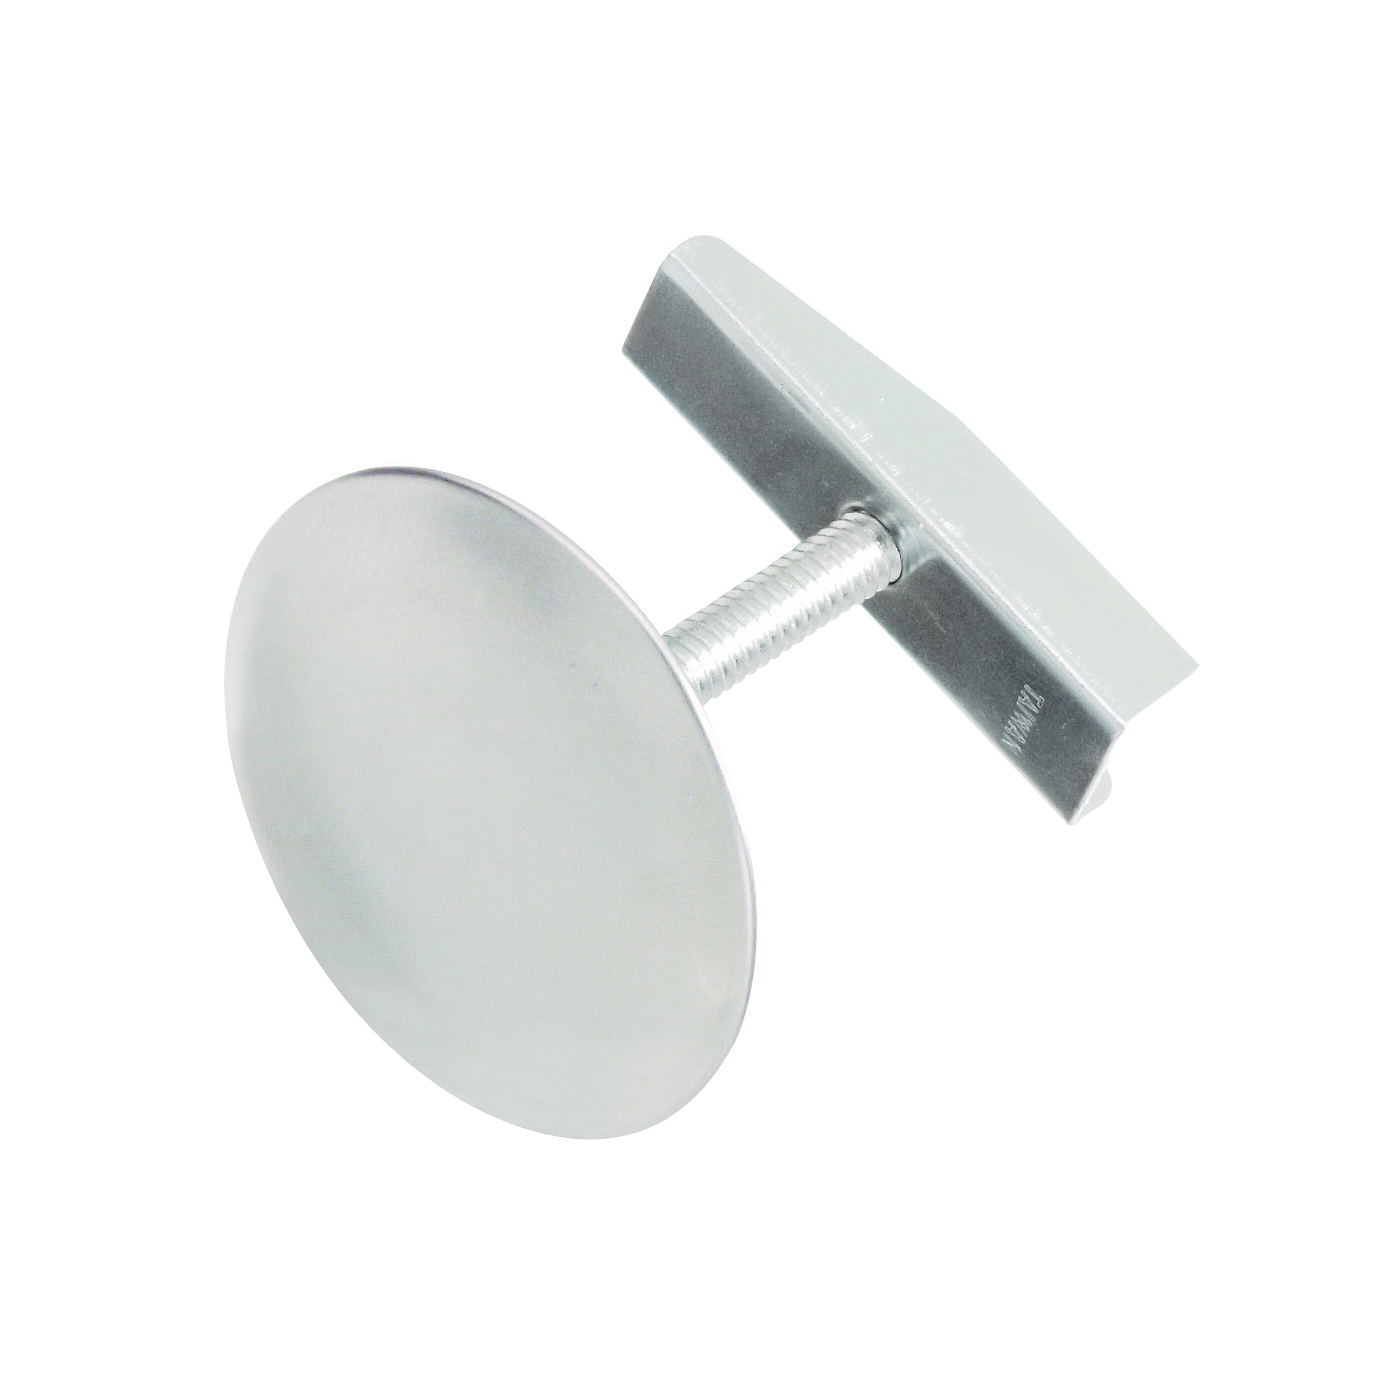 Picture of Plumb Pak PP815-1 Faucet Hole Cover, For: Sink and Faucets